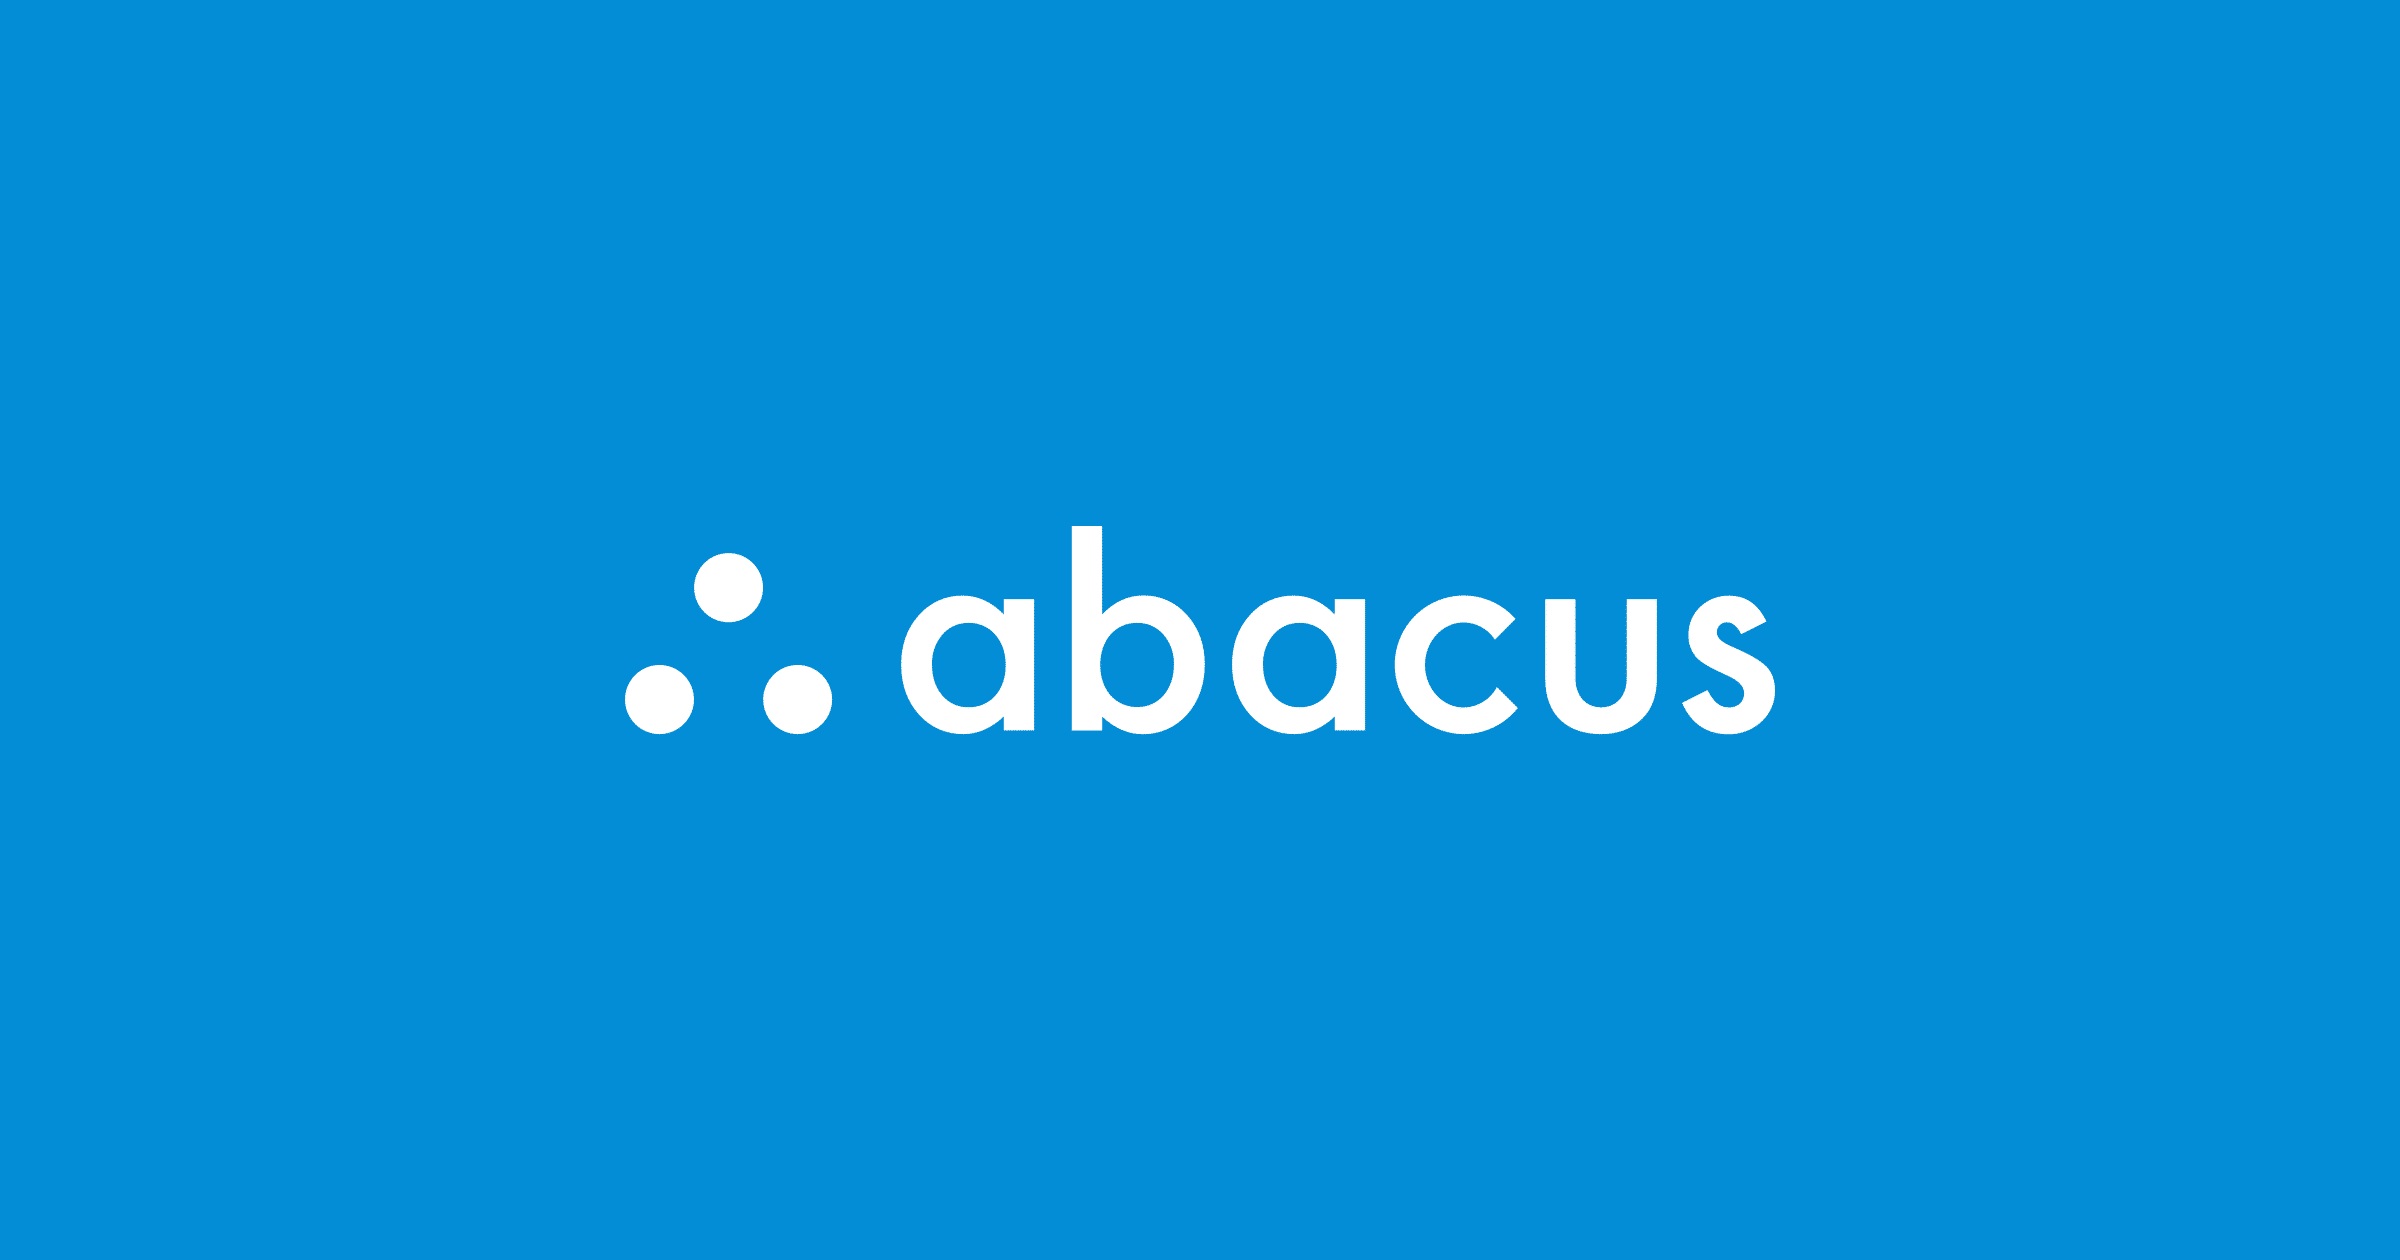 Abacus - Expense Management Software : SaaSworthy.com